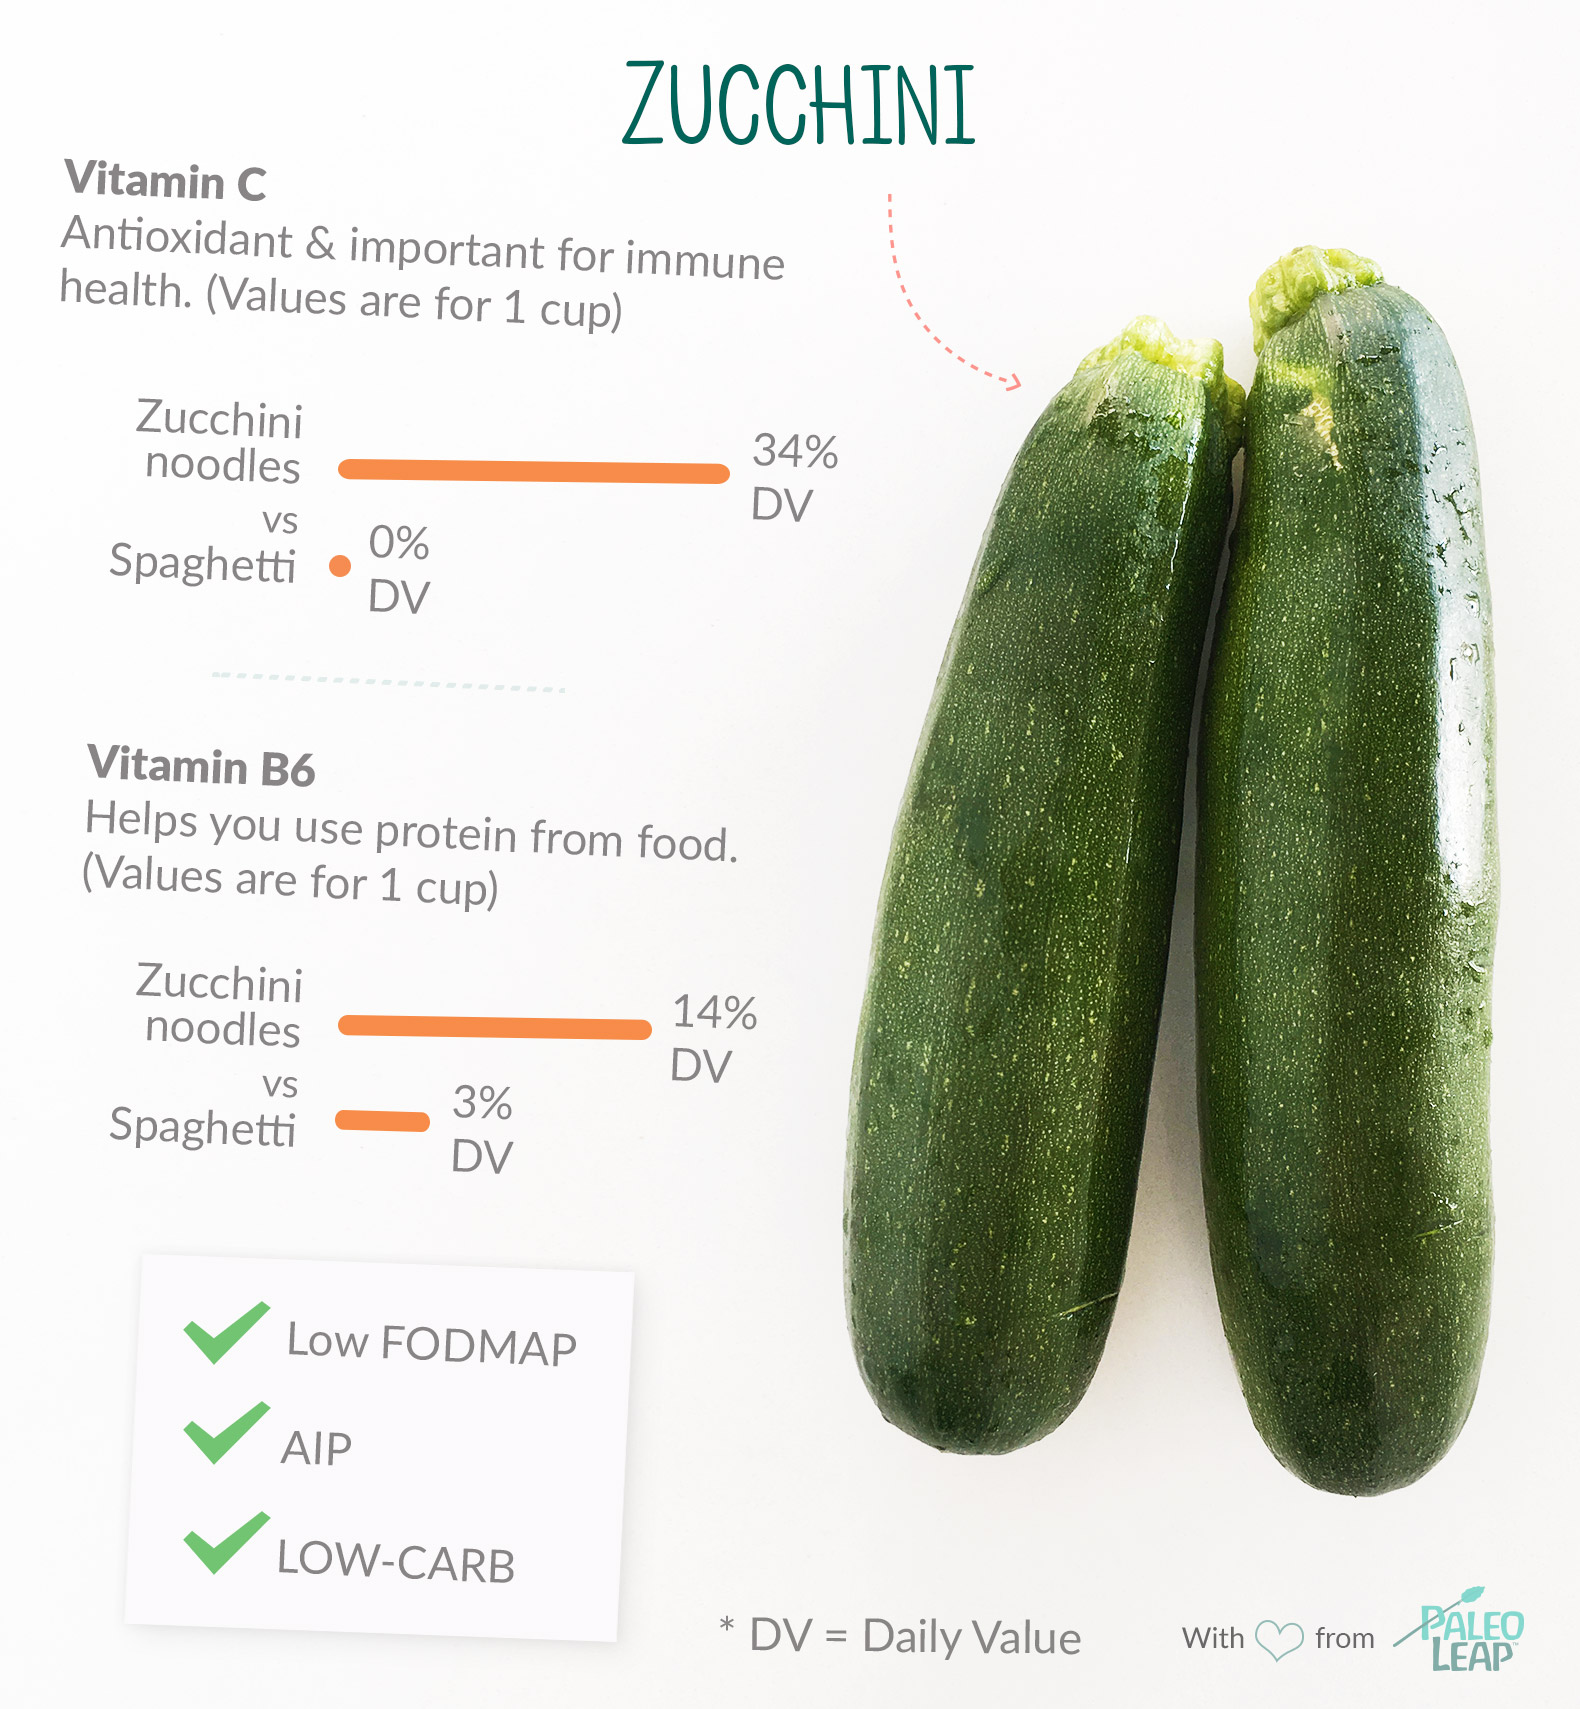 Zucchini highlights